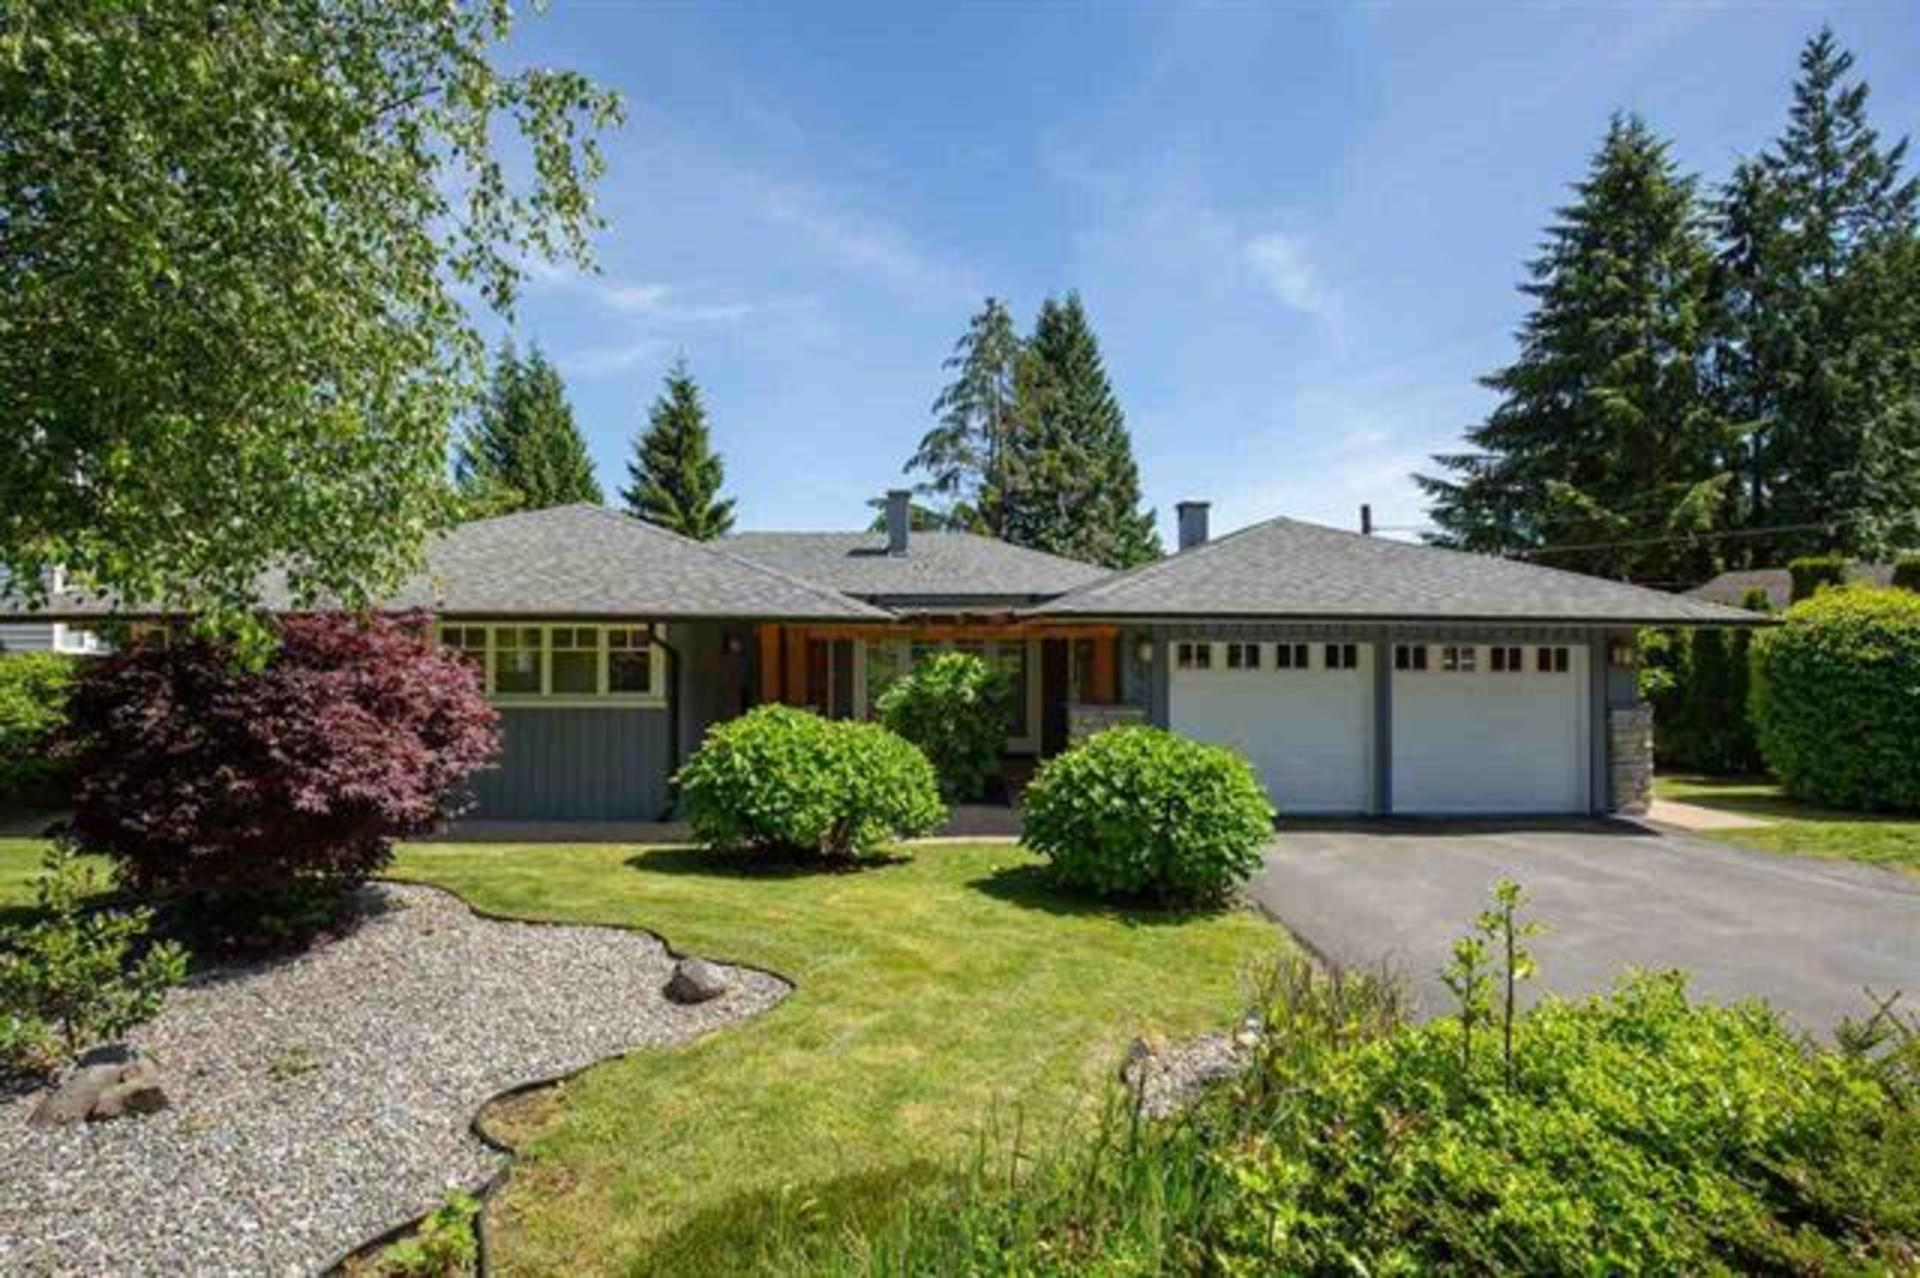 83 Glenmore Drive, Glenmore, West Vancouver